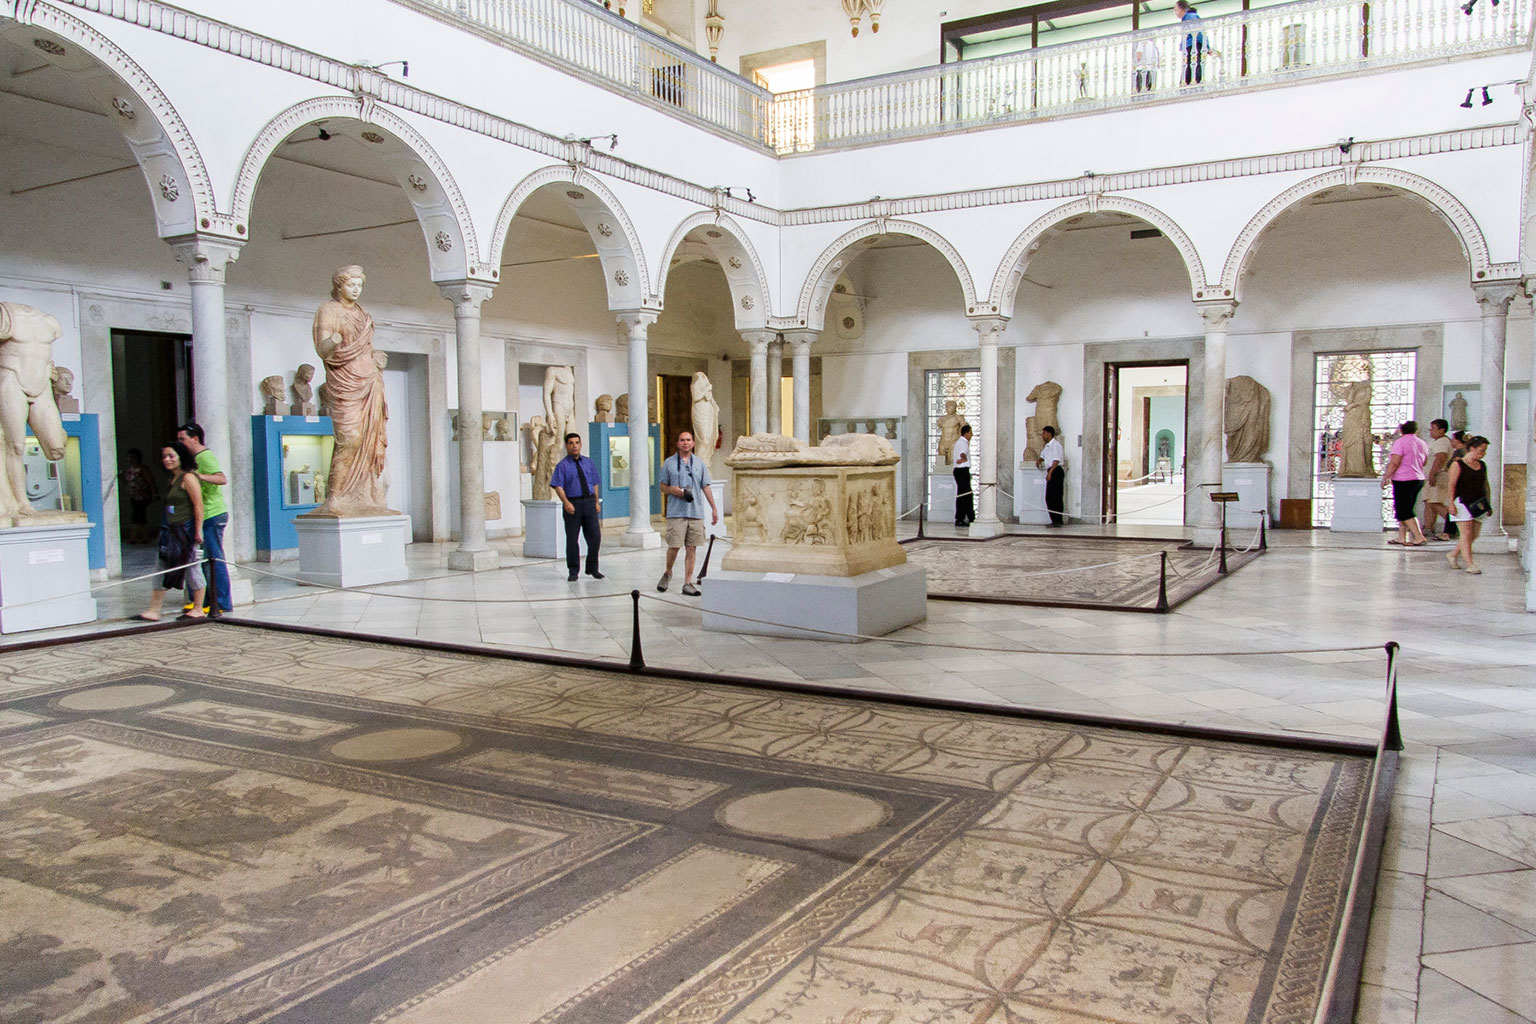 Inside the Bardo Museum